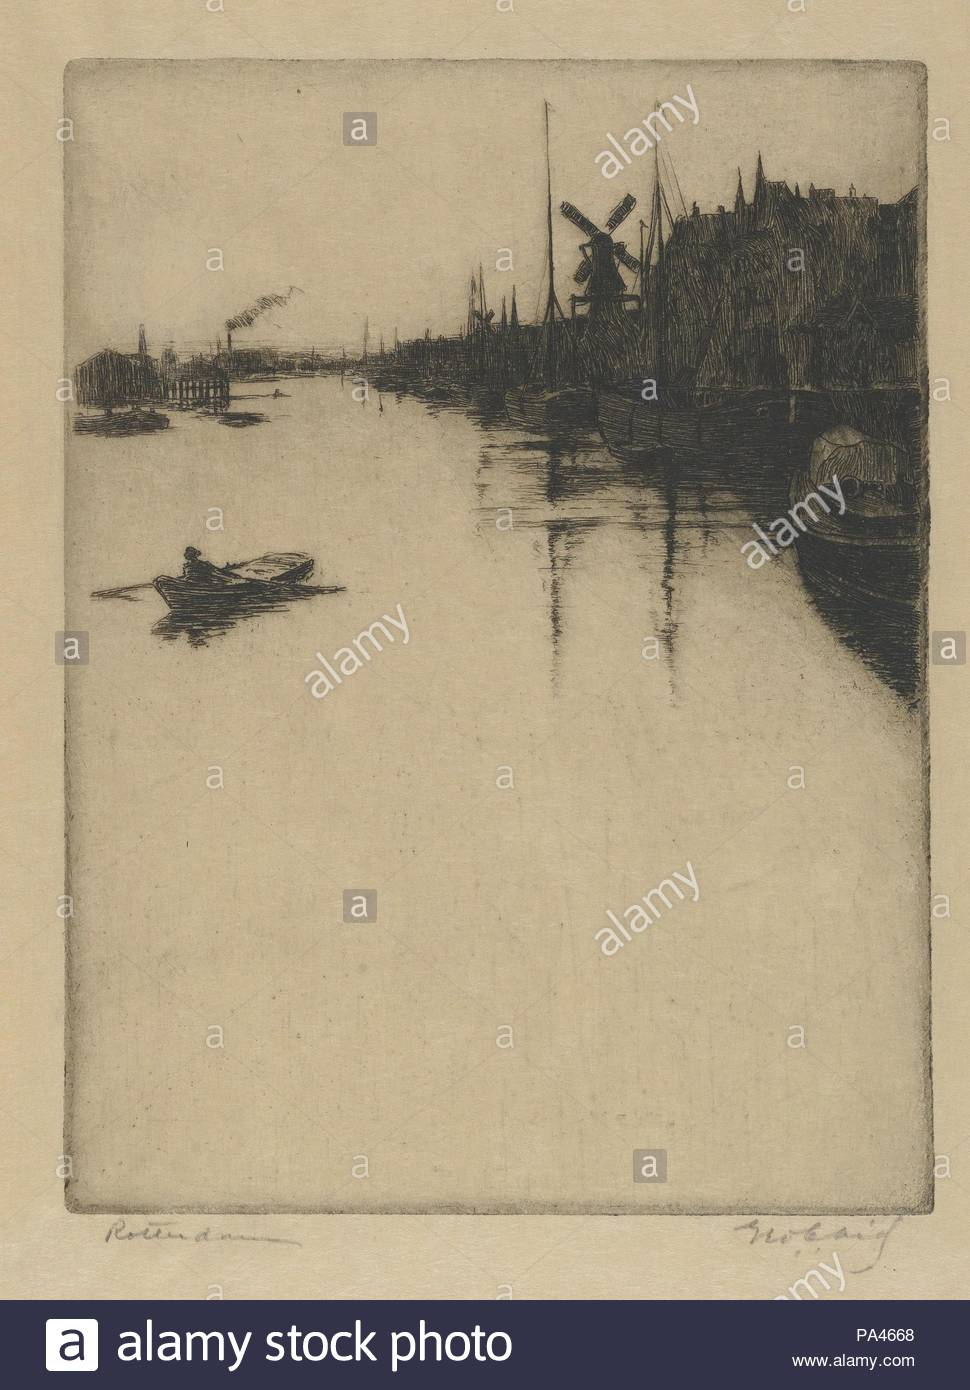 Canal, Rotterdam, late 19th–mid 20th century, Etching, Plate: 7 1/16 × 5 5/16 in. (18 × 13.5 cm), Prints, George Charles Aid (American, Quincy, Illinois 1872–1938). - Stock Image